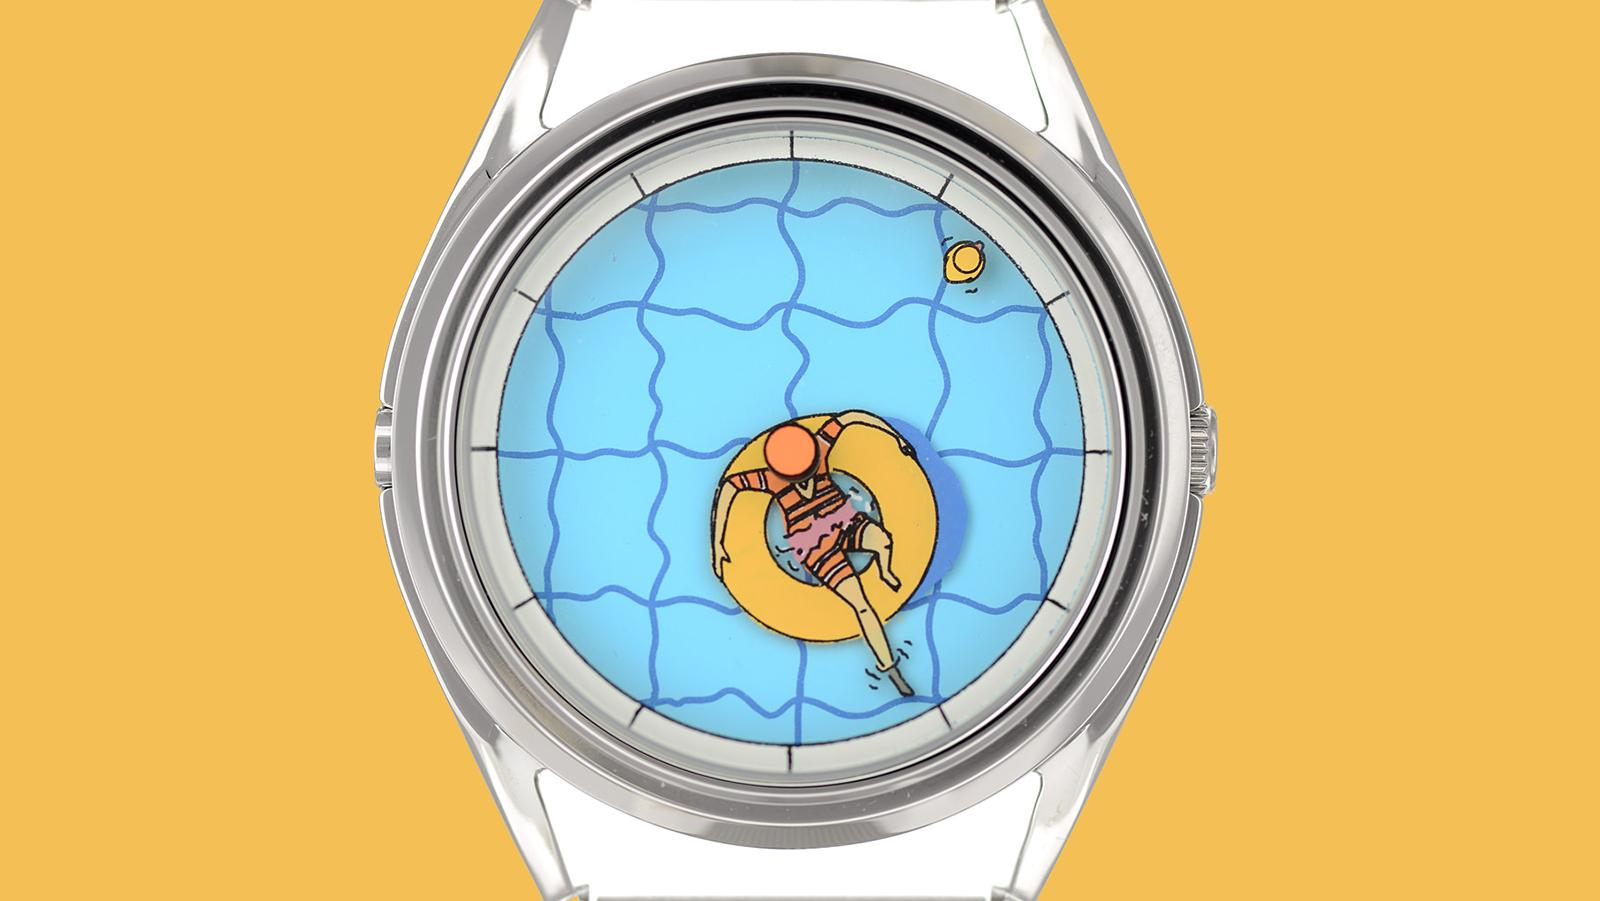 Kristof Devos on how he designed this summer's must-have watch